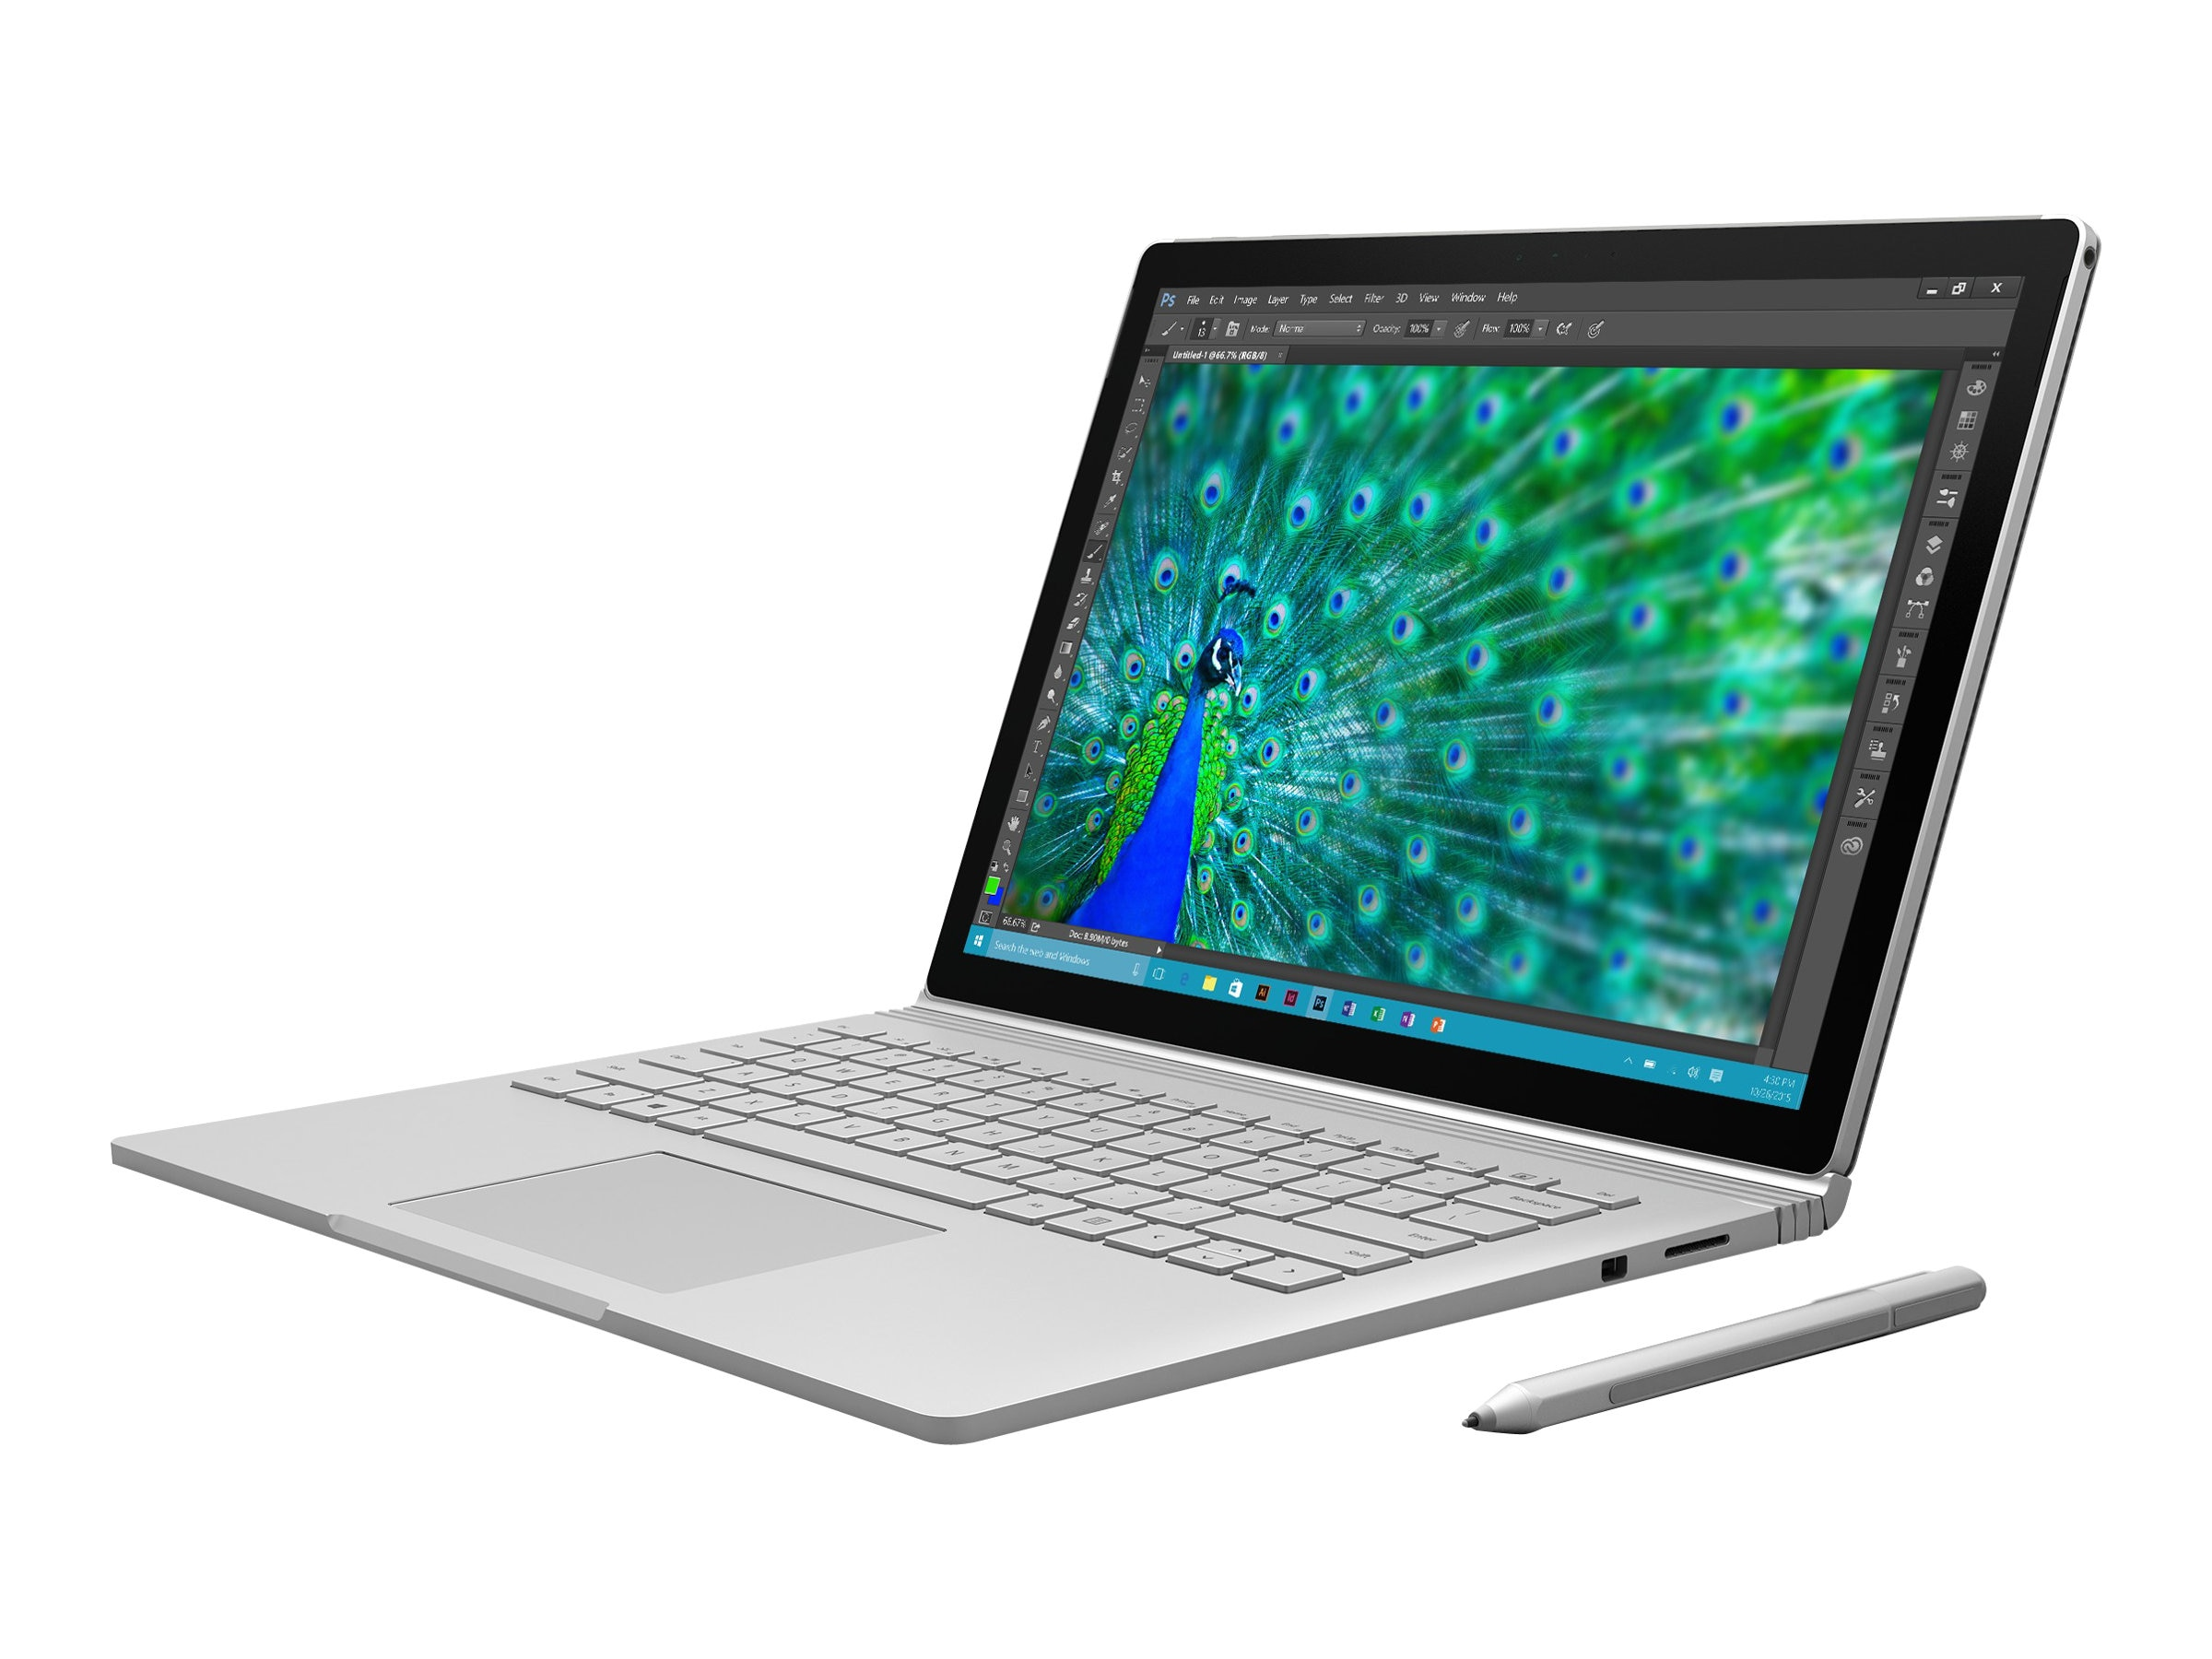 Scratch & Dent Microsoft Surface Book Core i5 dGPU 8GB 256GB, TP4-00001, 31758754, Notebooks - Convertible